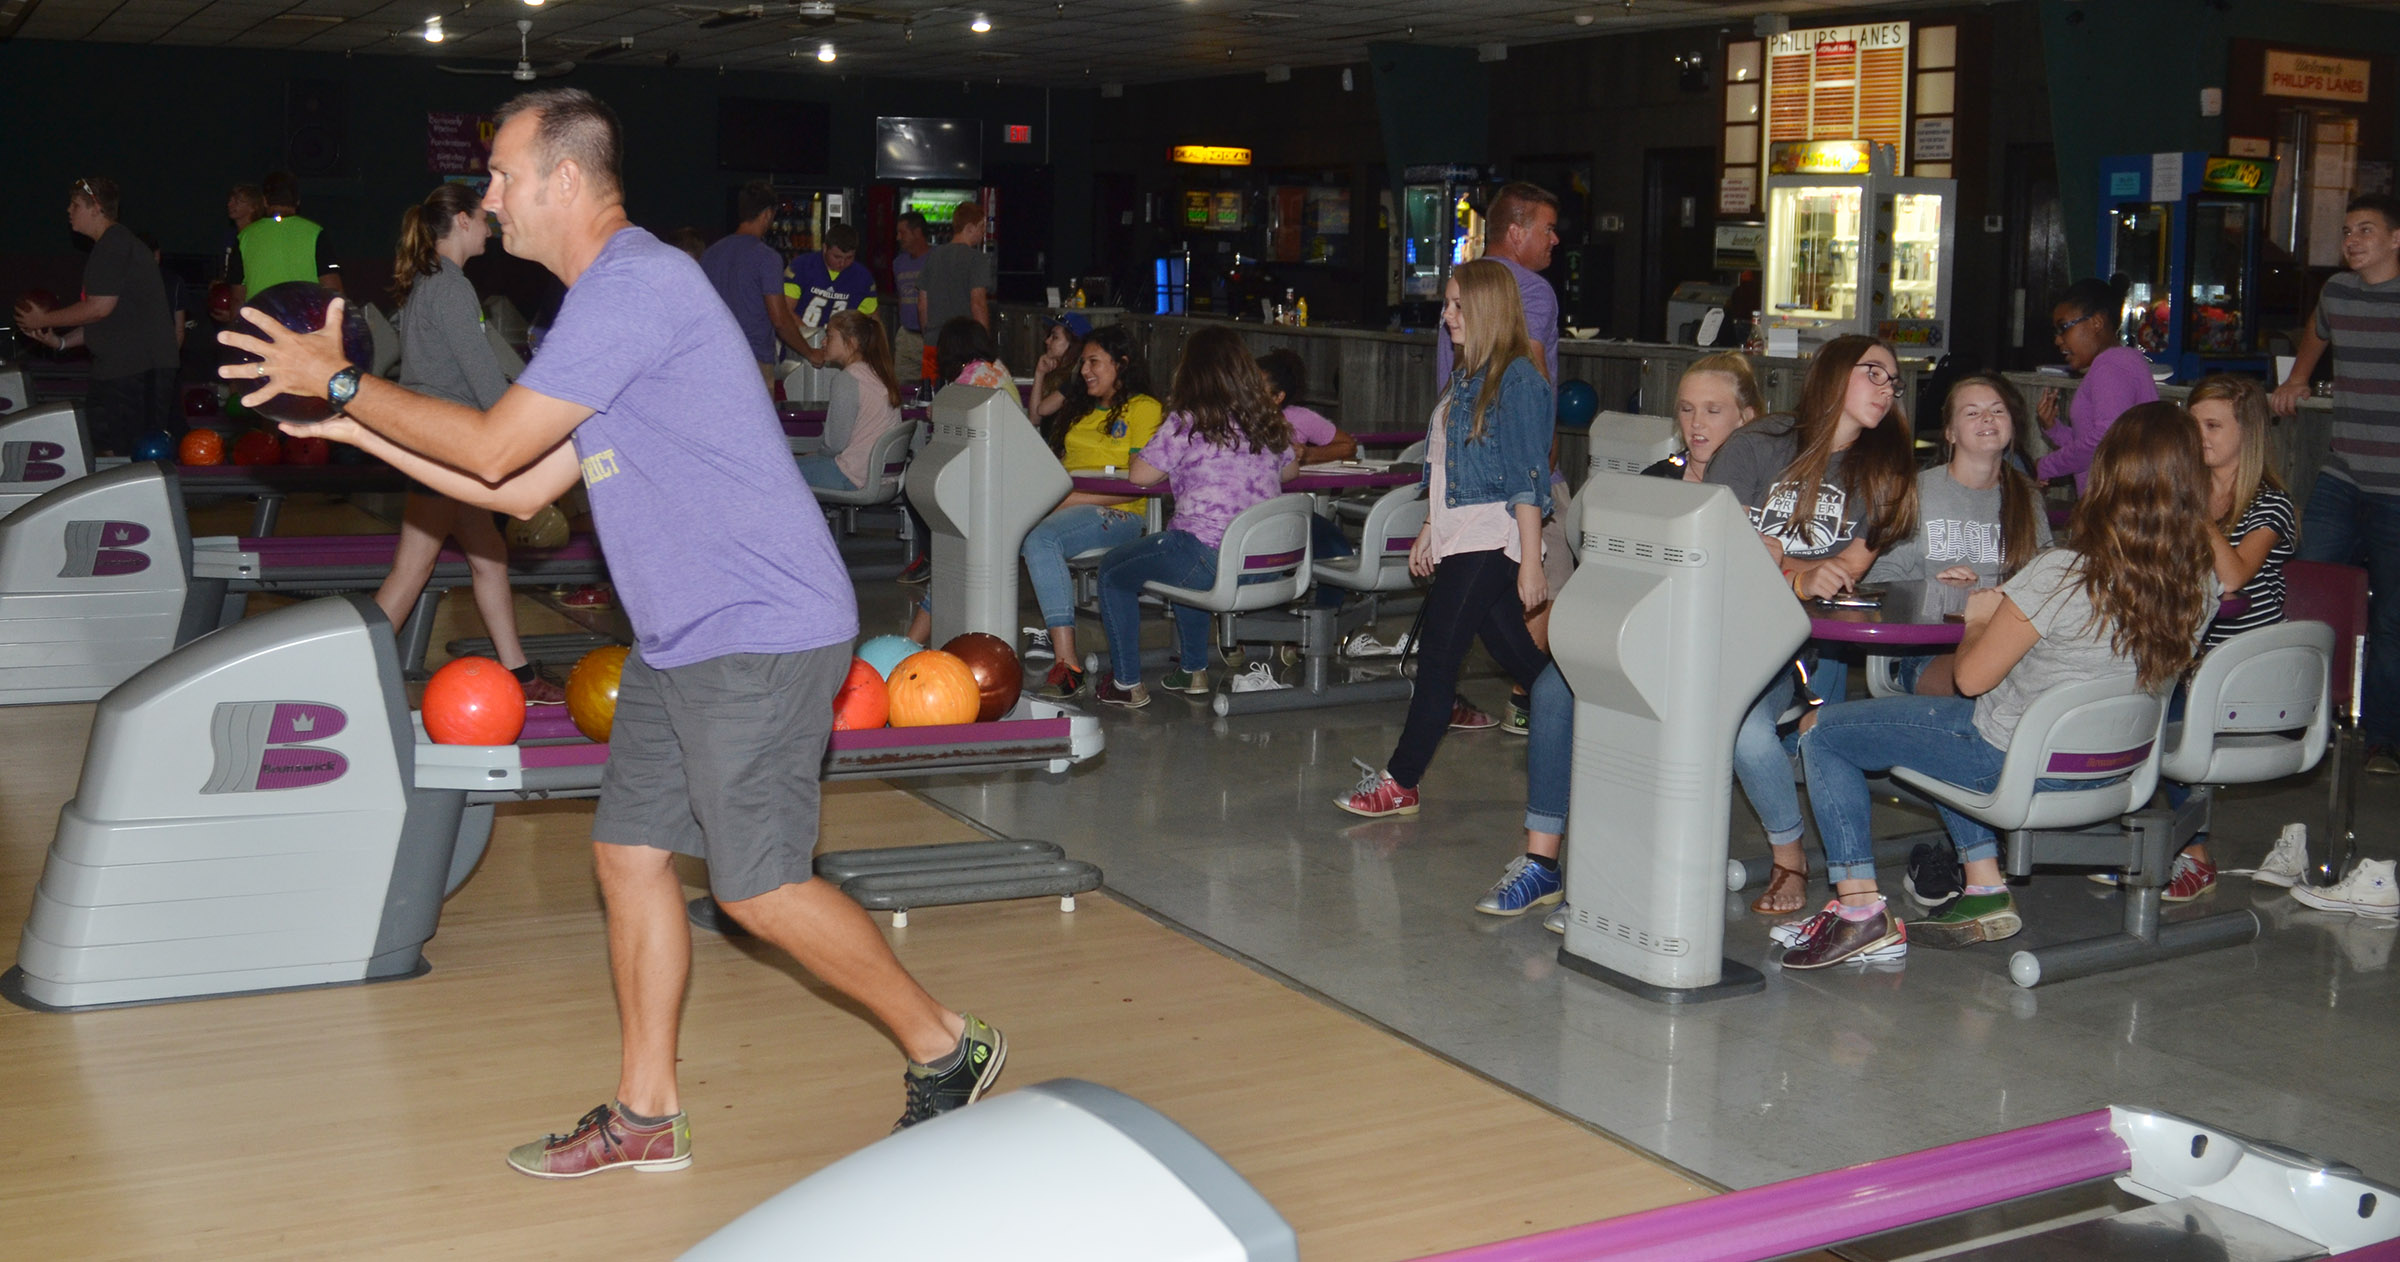 CHS exceptional child educator Steve Doss bowls with freshmen students.